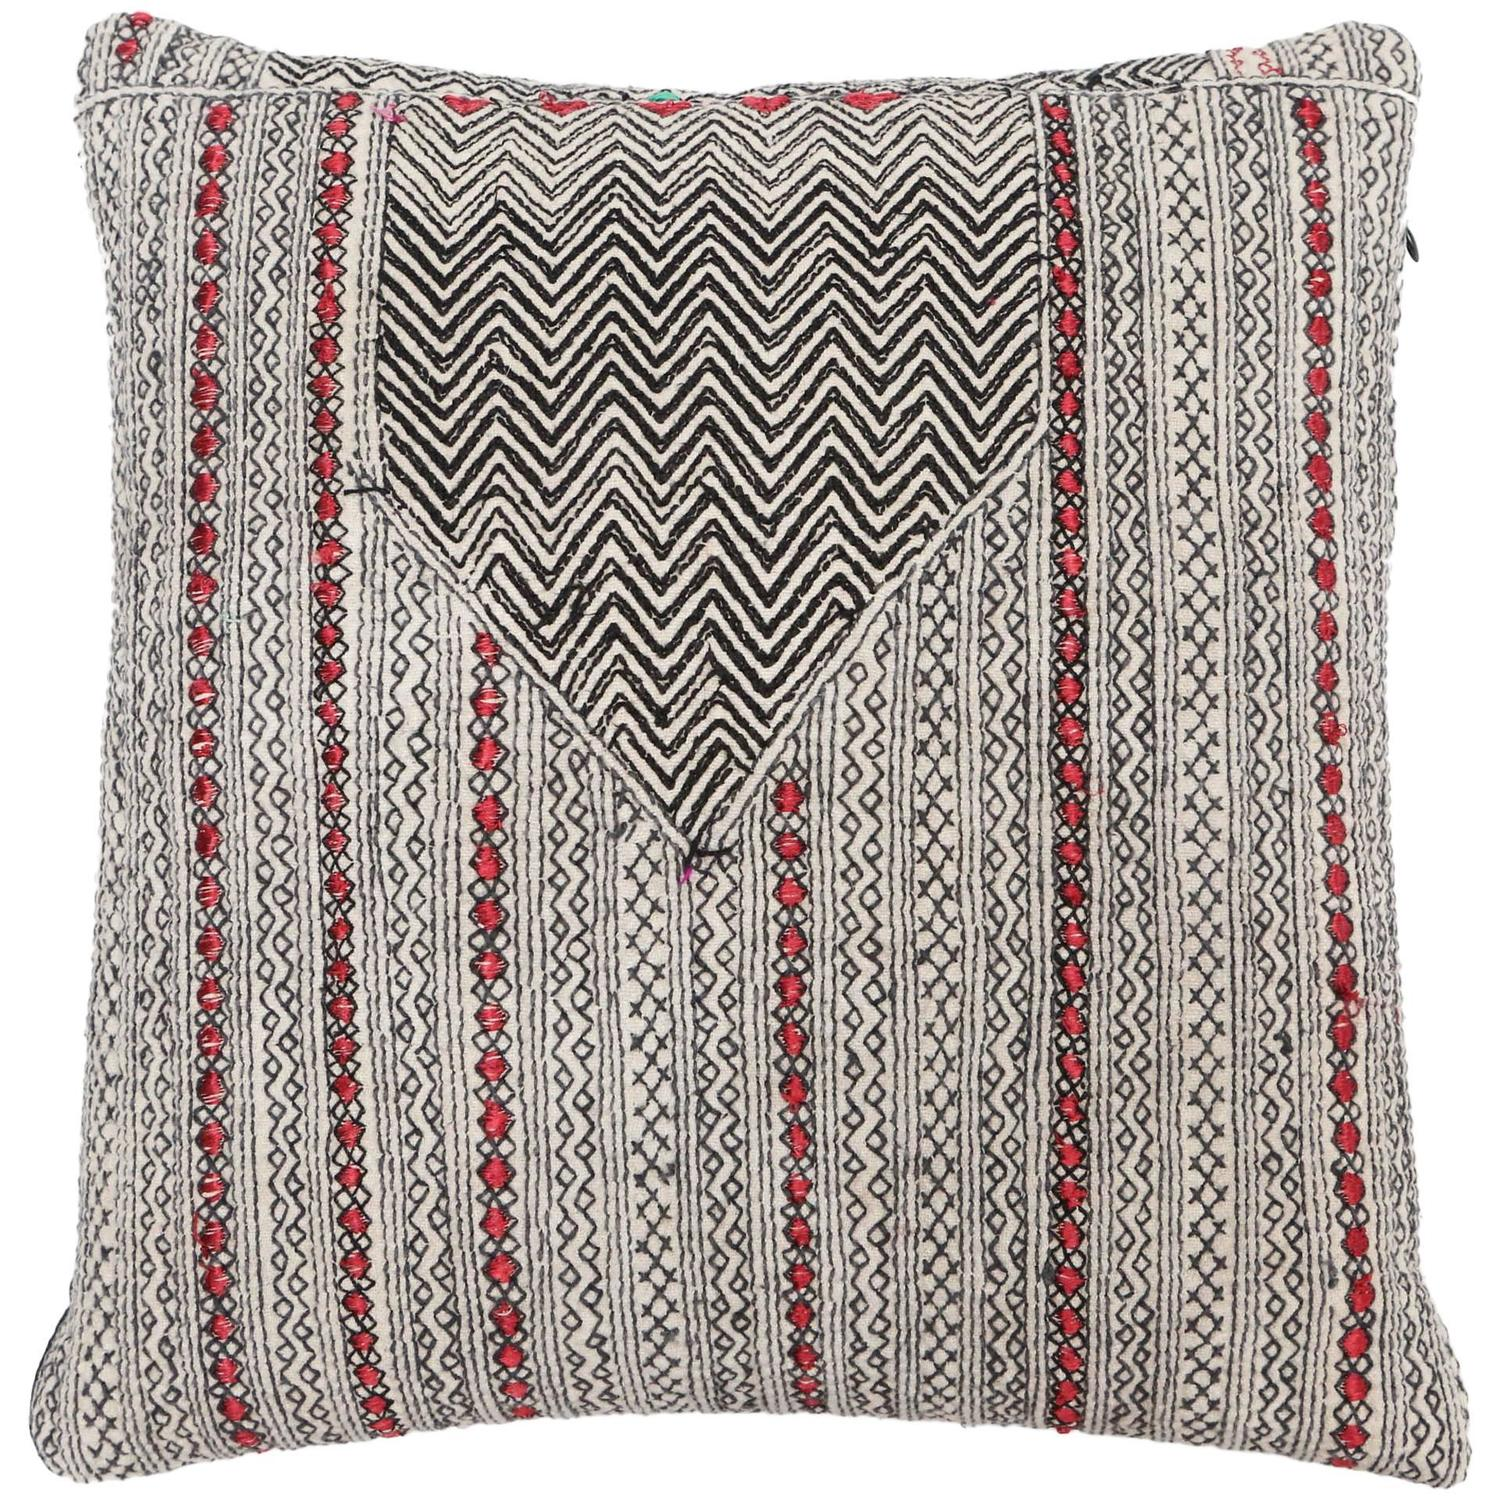 Vintage Afghani Embroidered Pillow at 1stdibs